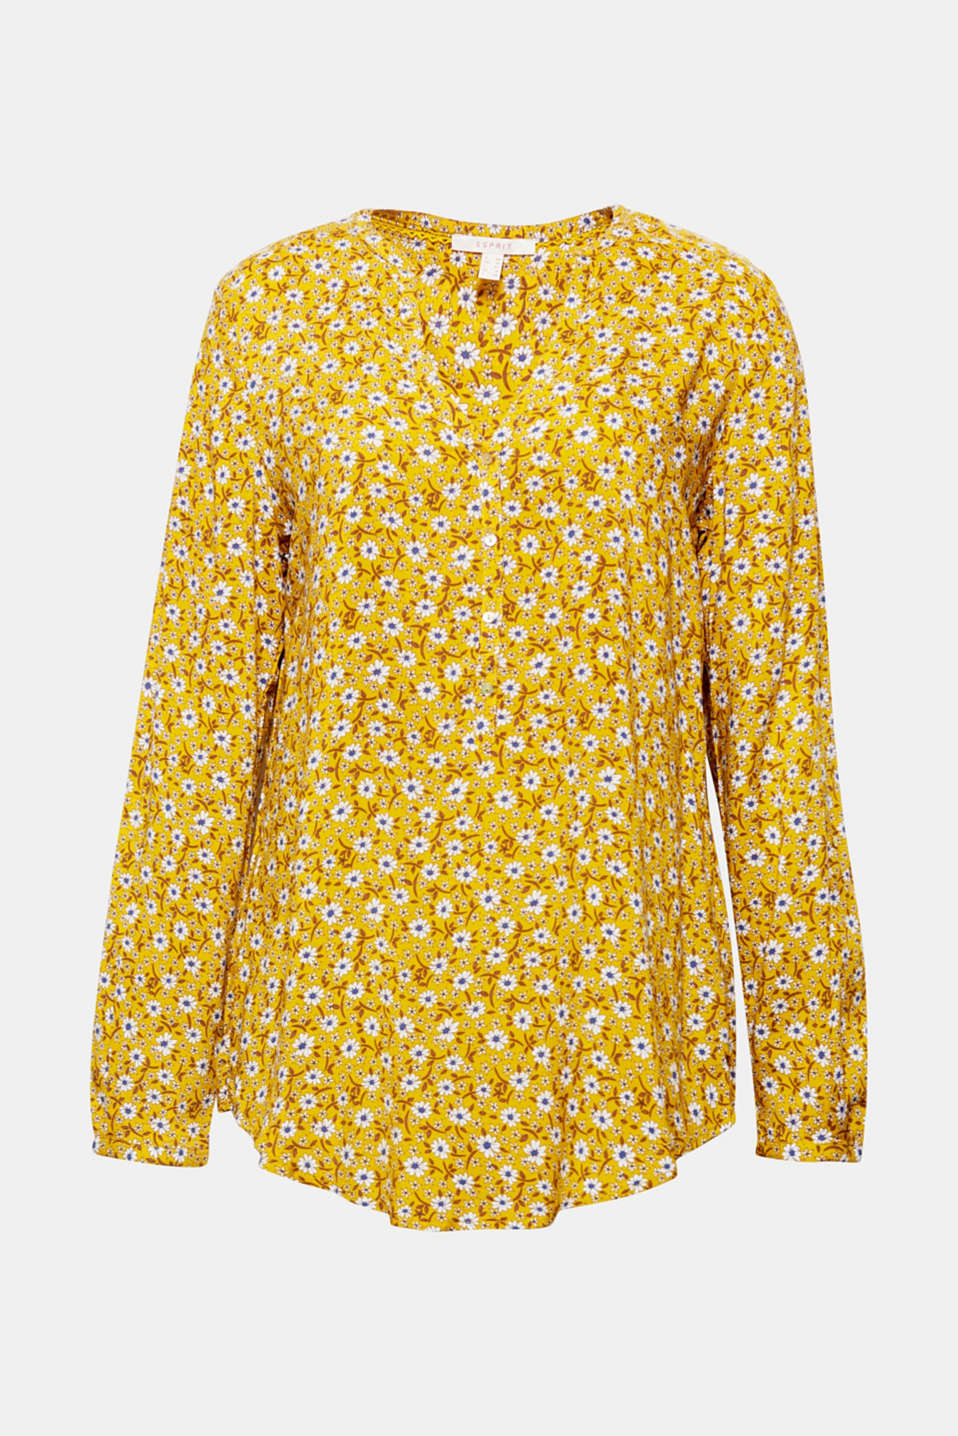 With a beautiful print, an airy neckline and adjustable turn-up sleeves, this flowing blouse is perfect for everyday wear!